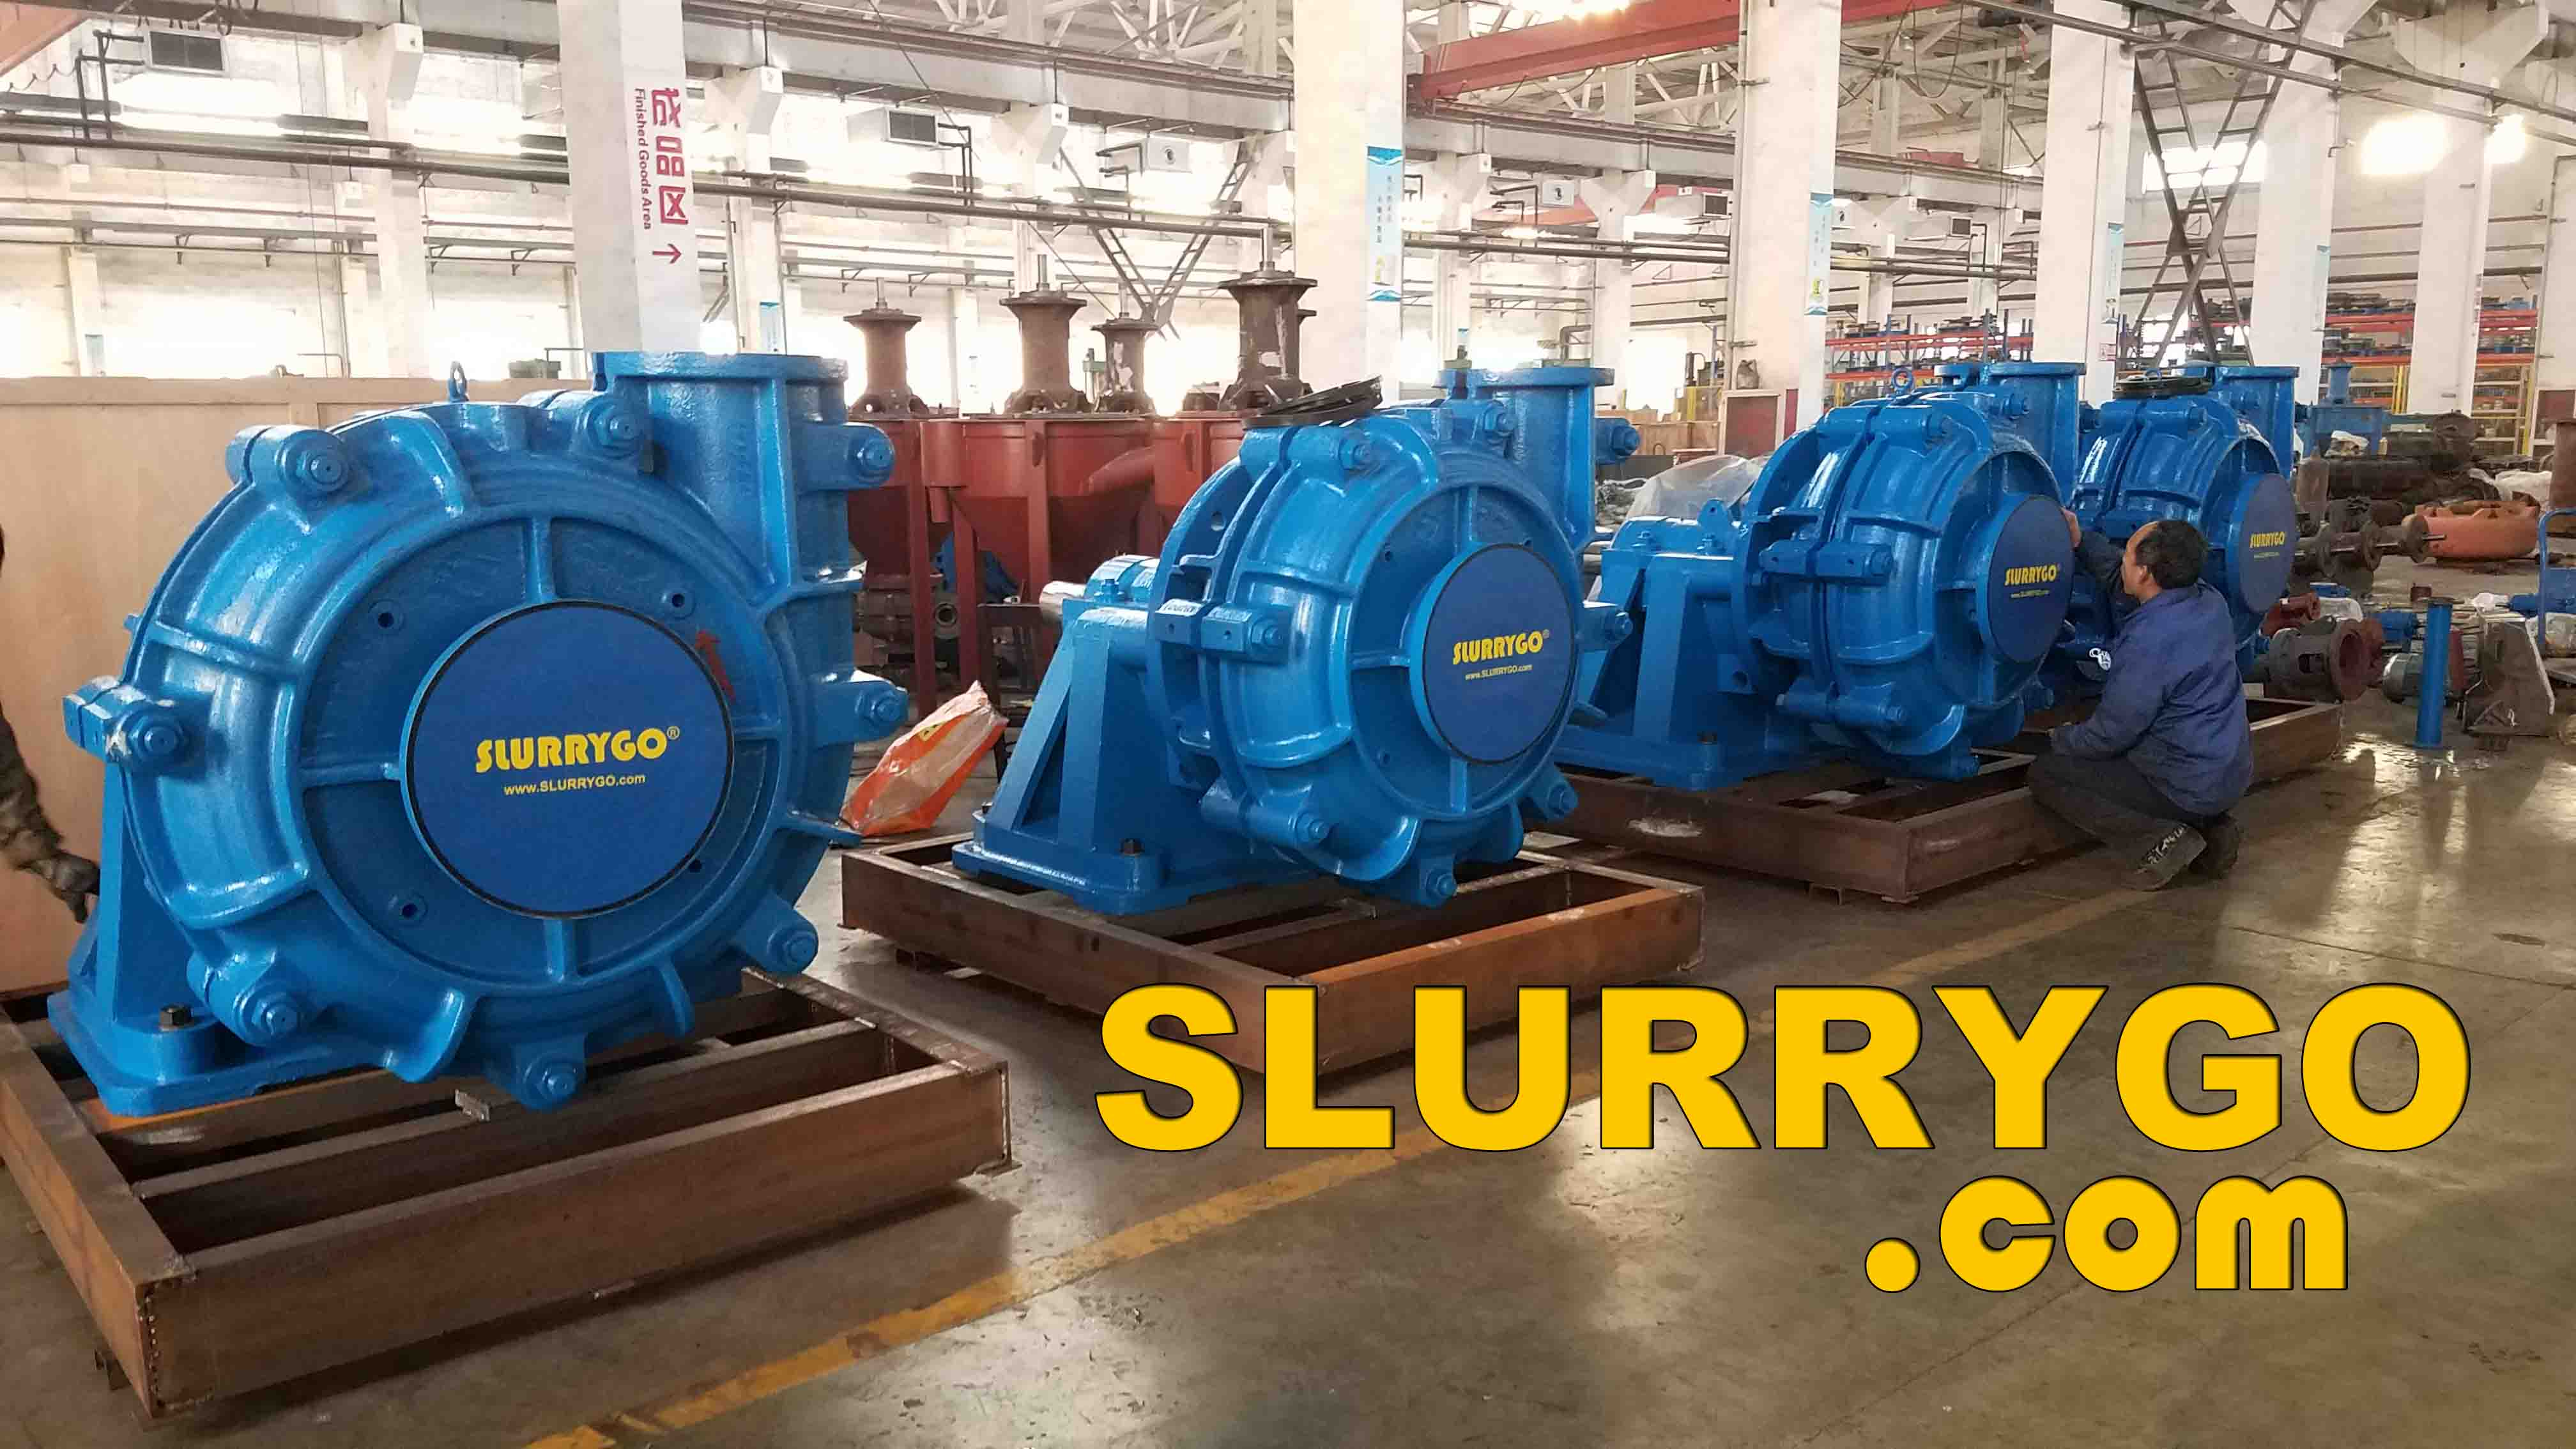 www.SLURRYGO.com alternative WARMAN slurry pumps and spare parts